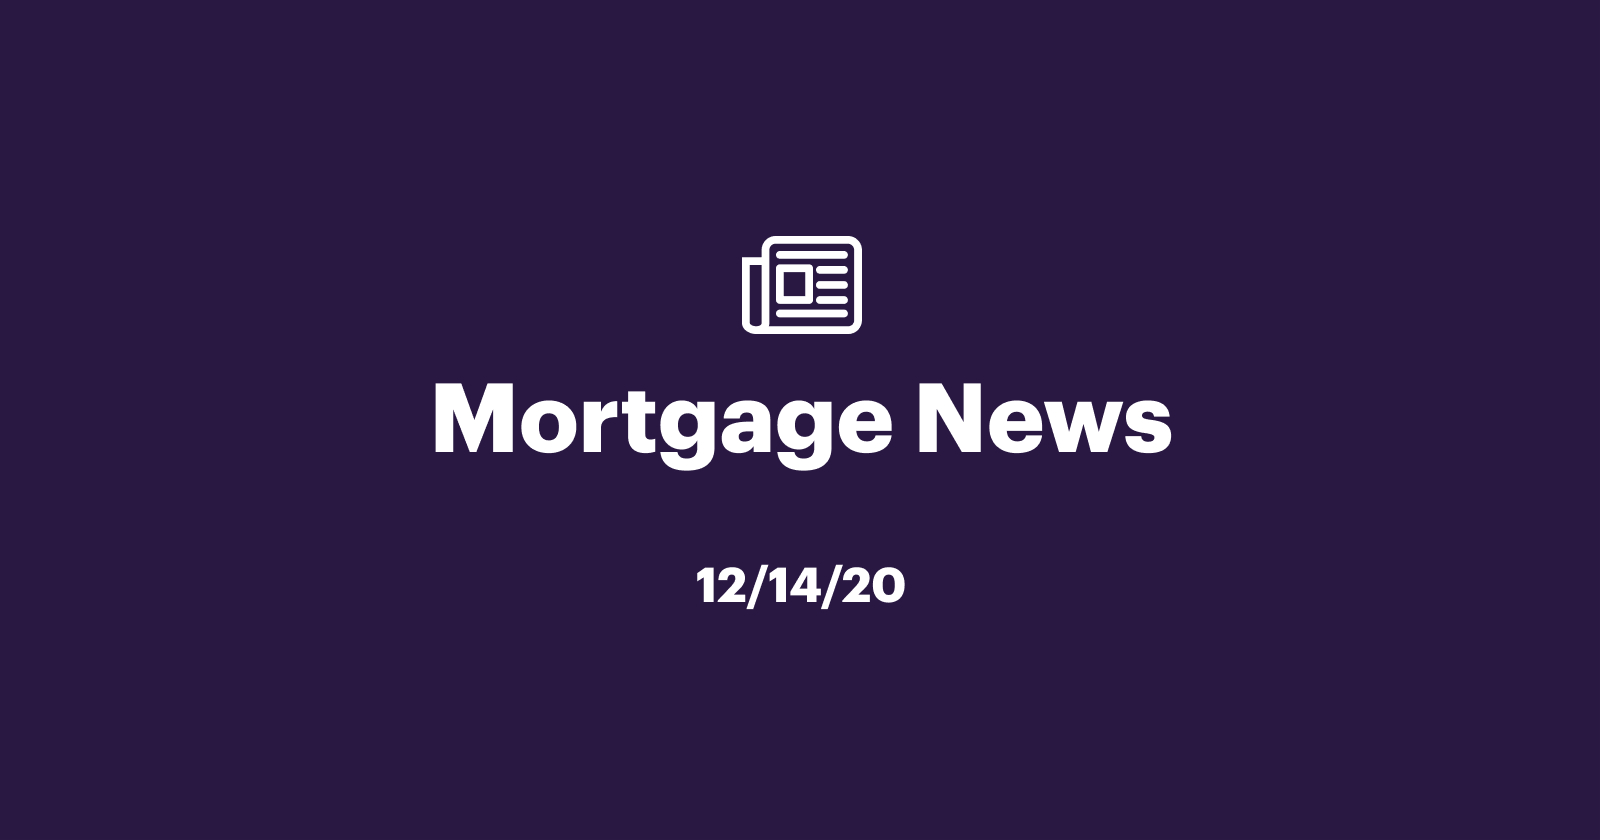 Mortgage News 12/14/2020: Expect Rates, Prices, and Sales to Rise Gradually in 2021